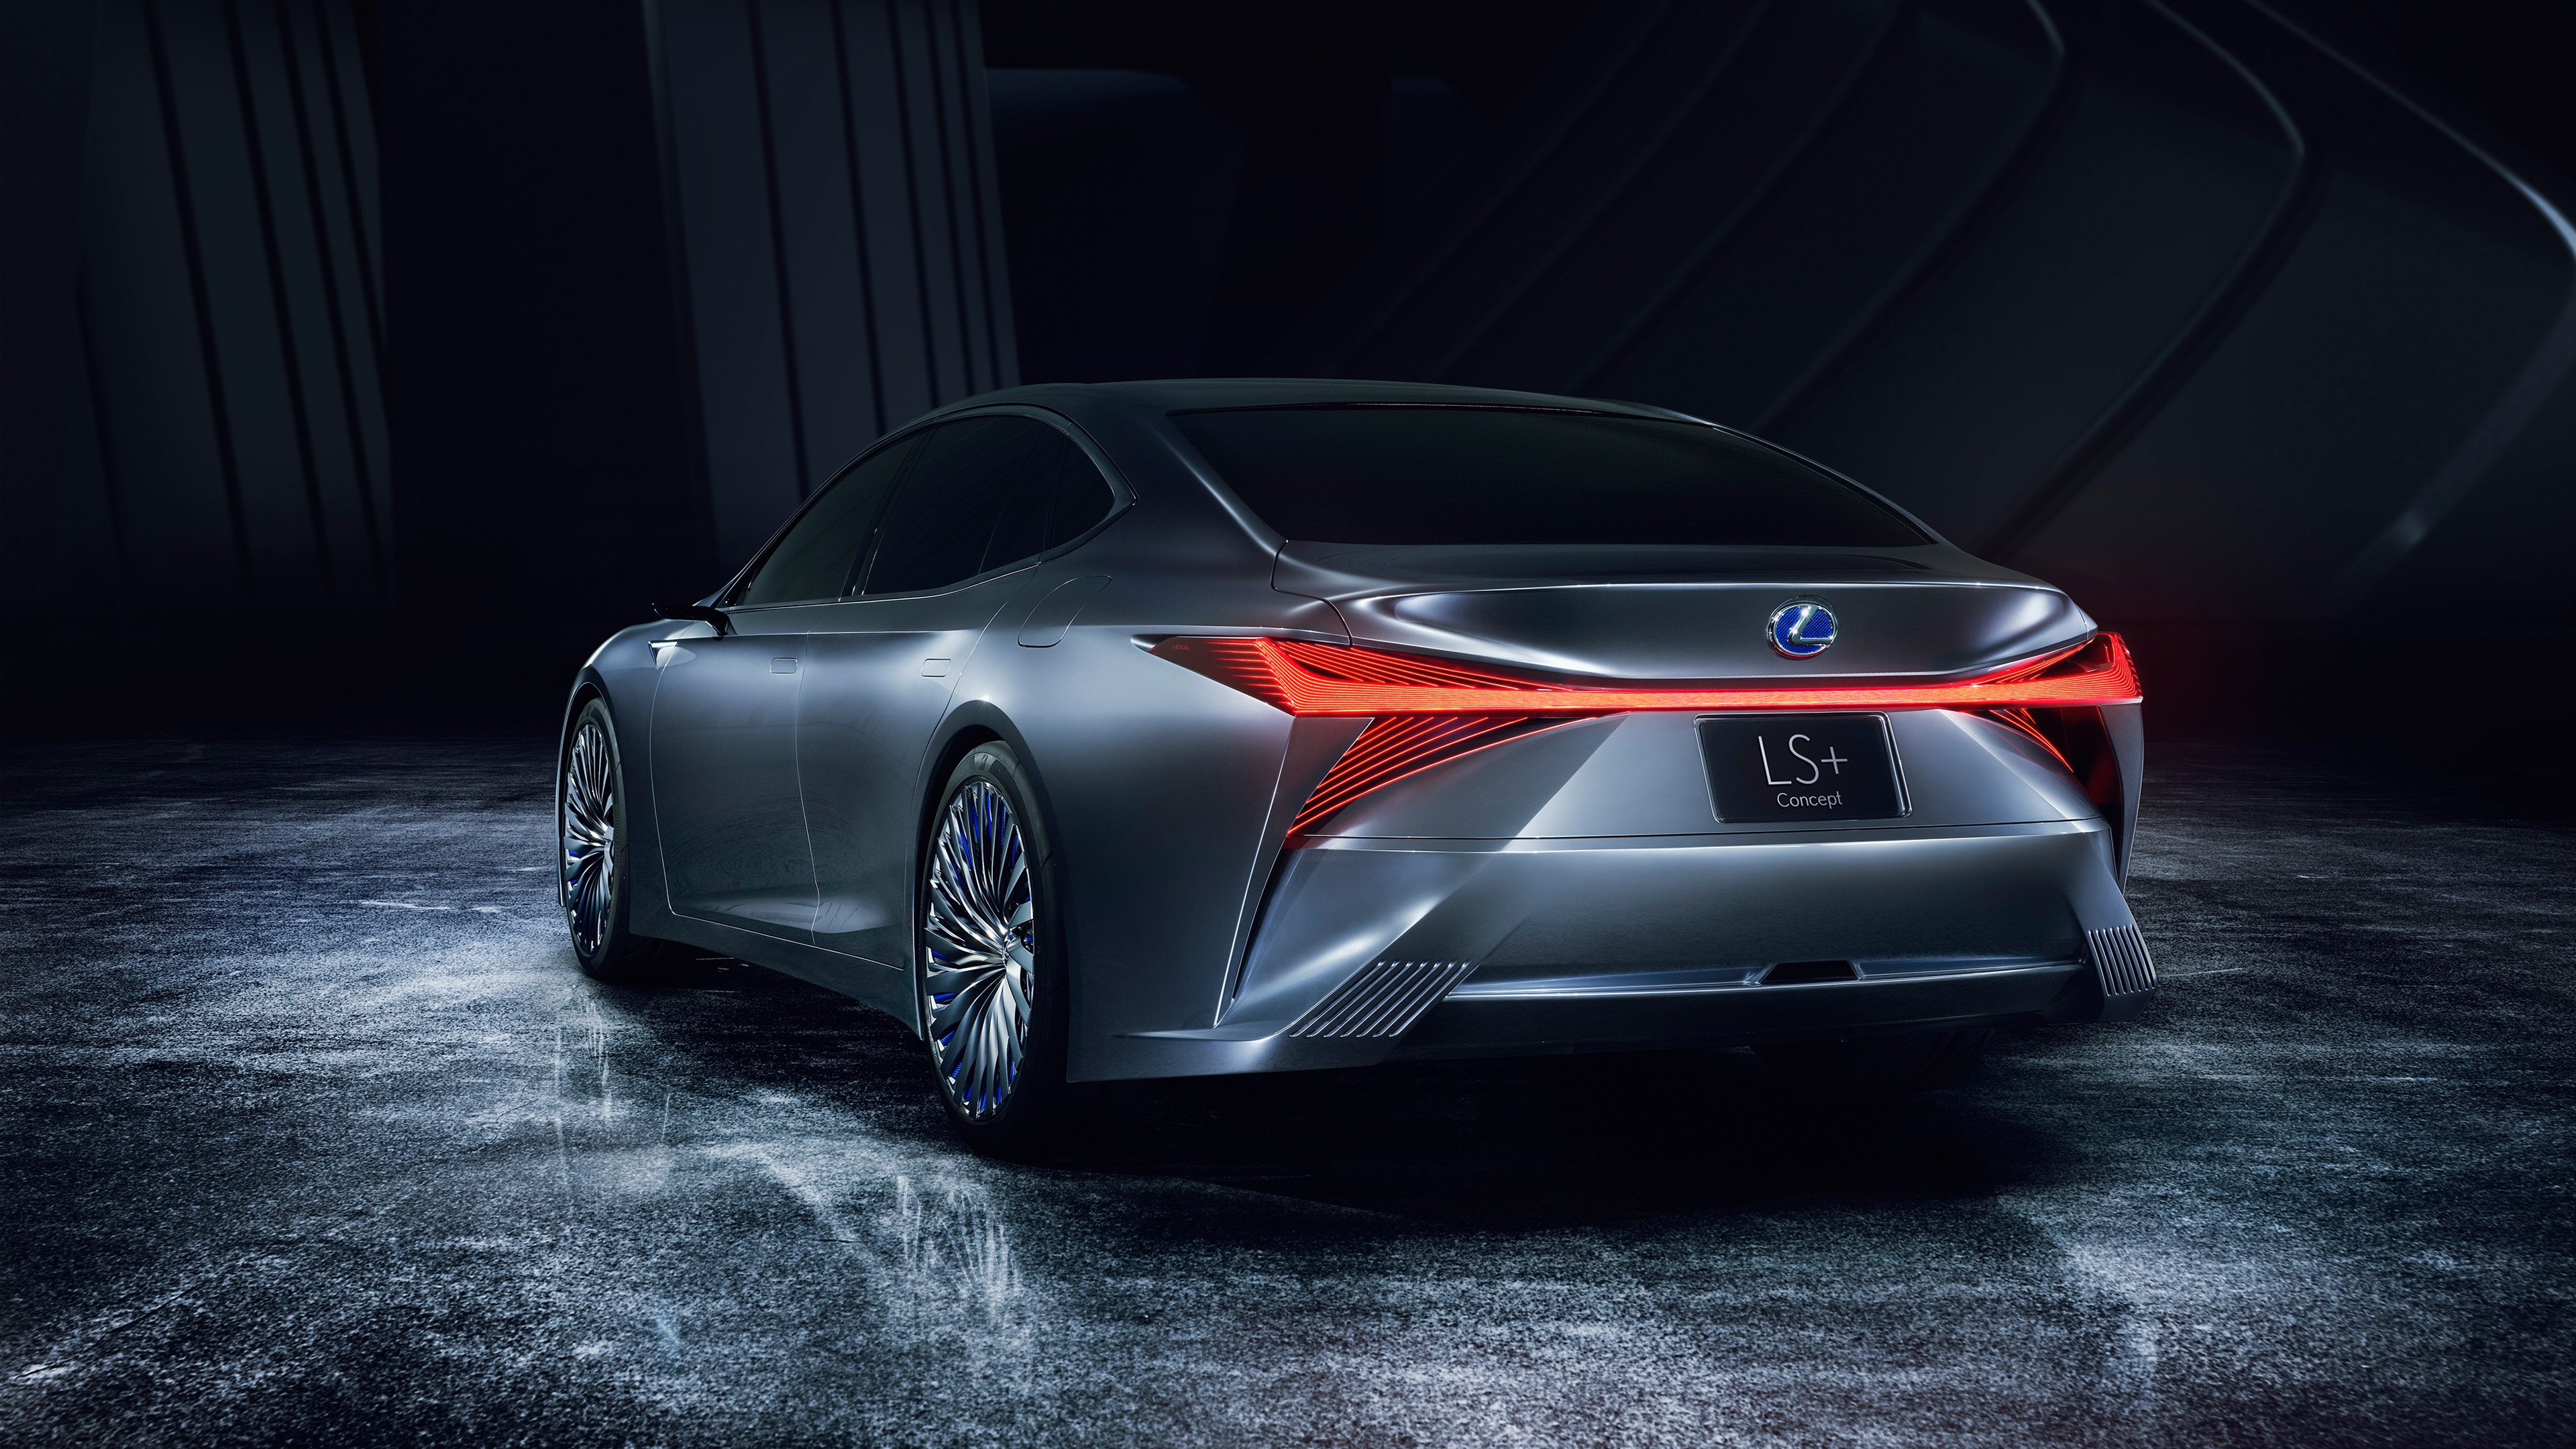 https://www.hdcarwallpapers.com/walls/2017_lexus_ls_plus_concept_4k_5-HD.jpg